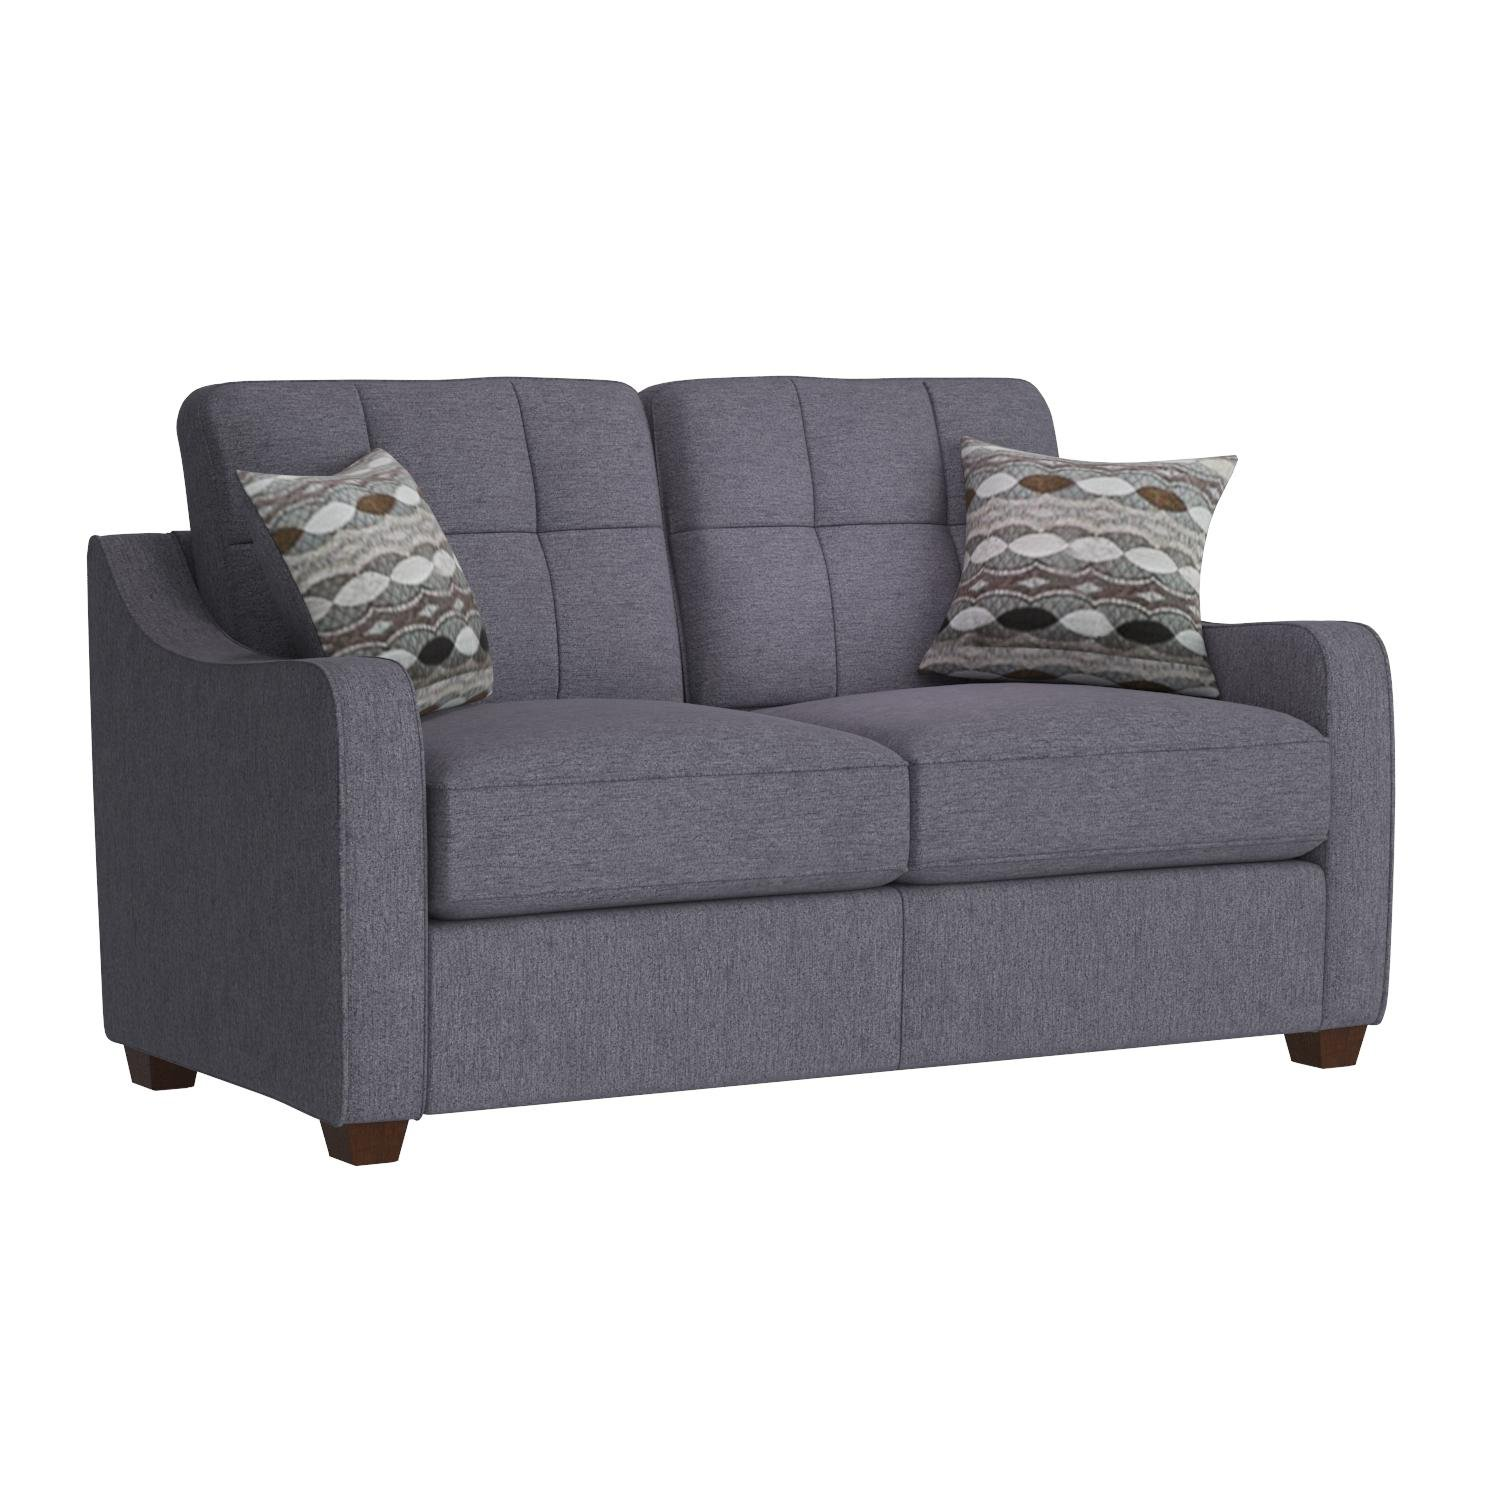 Acme Furniture 53791 Cleavon II Loveseat with 2 Pillows, Gray Linen by Acme Furniture